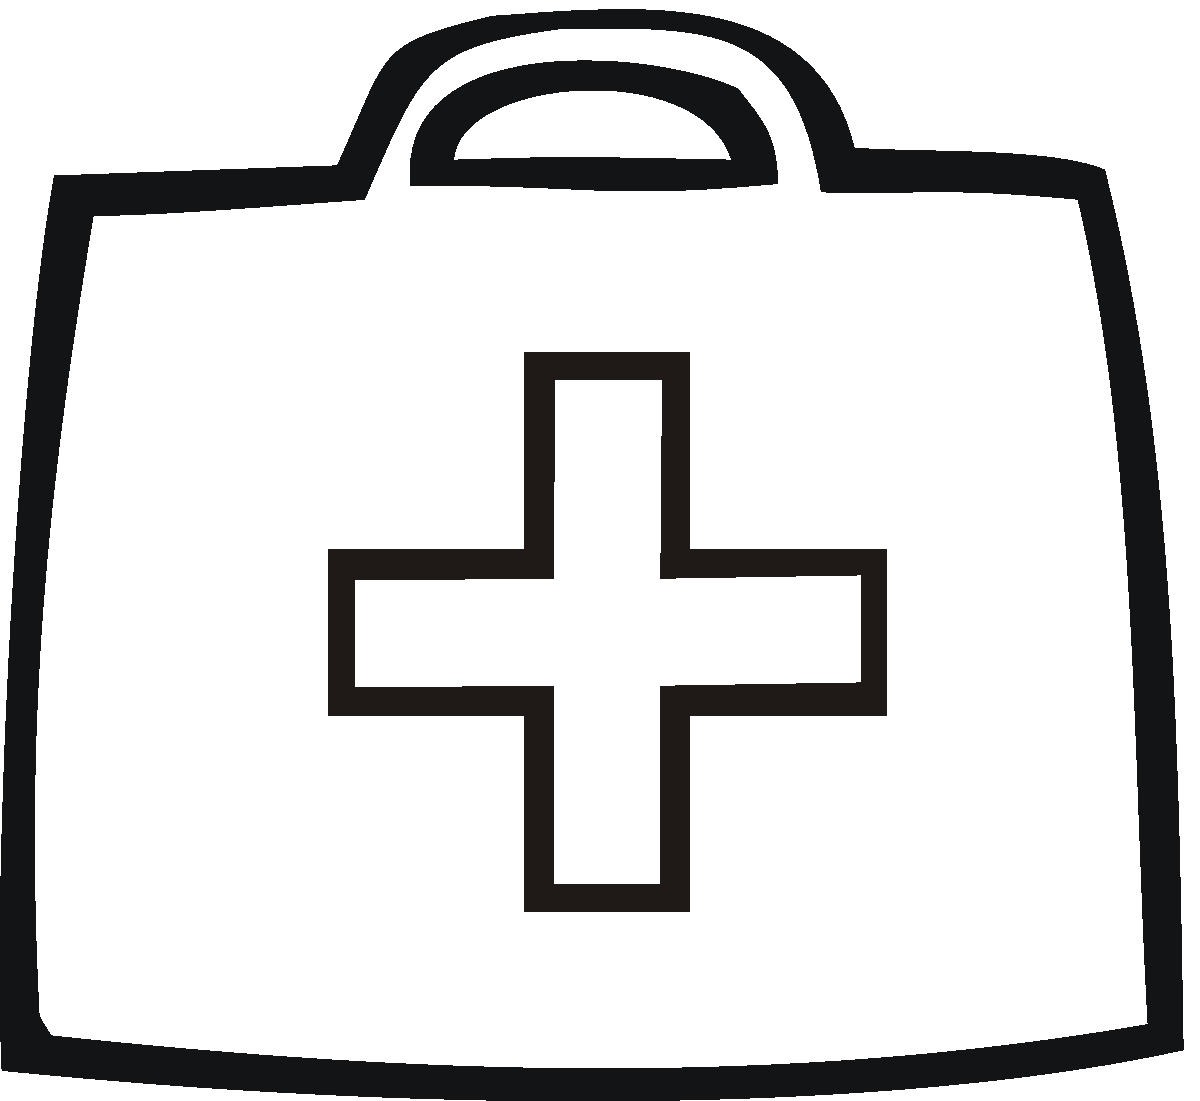 First Aid Kit Coloring Pages For Kids free image